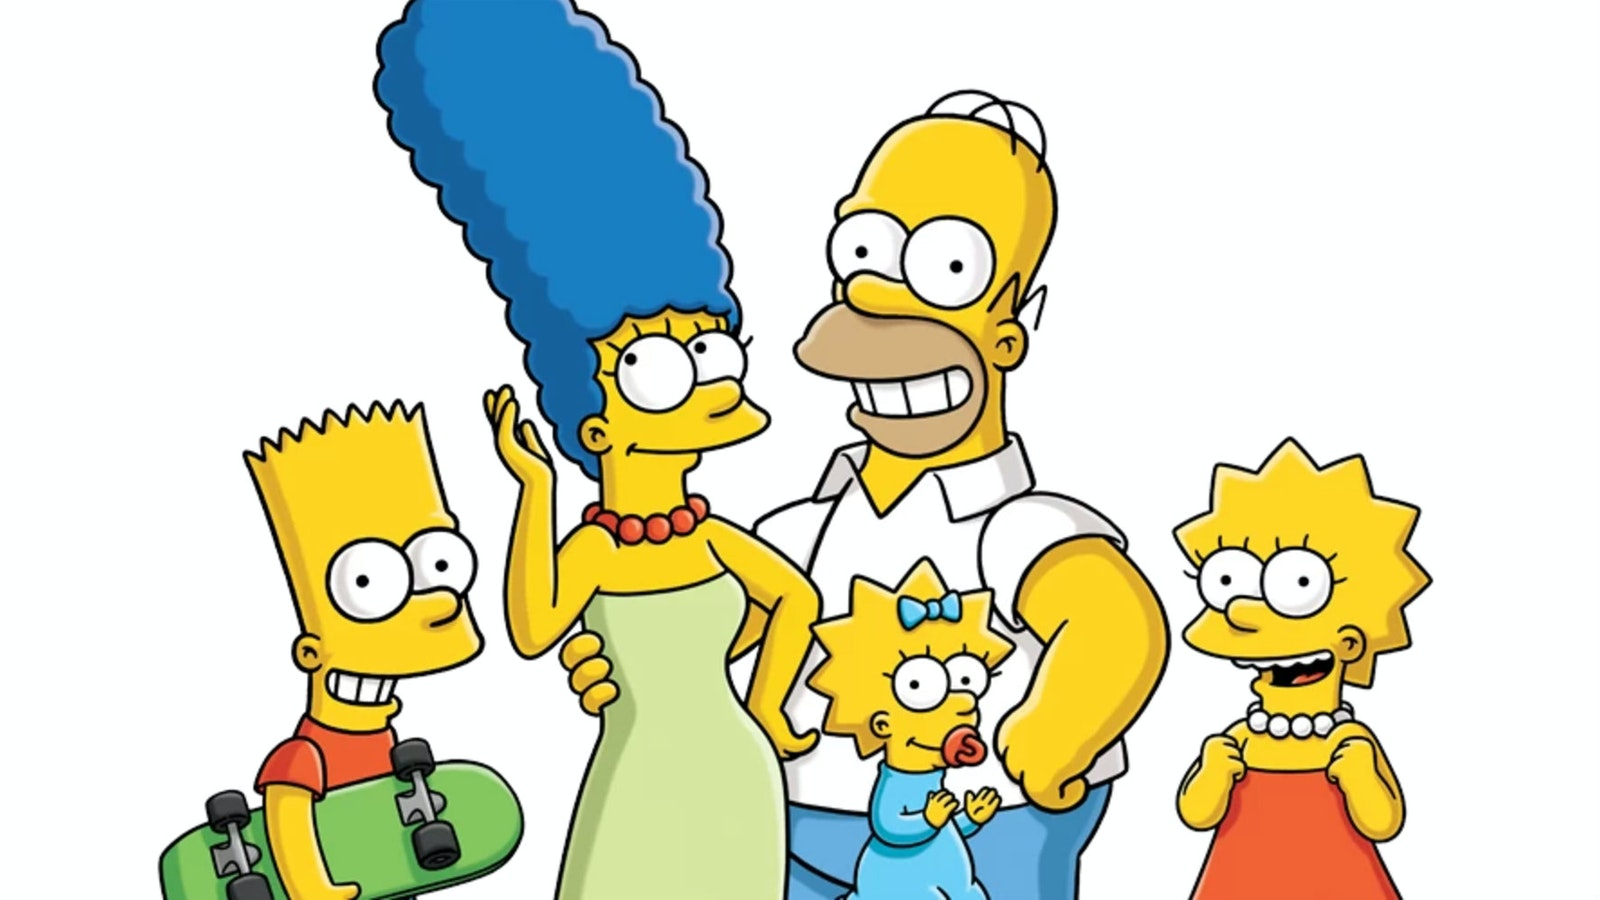 Did the Simpsons Ruin a Generation?